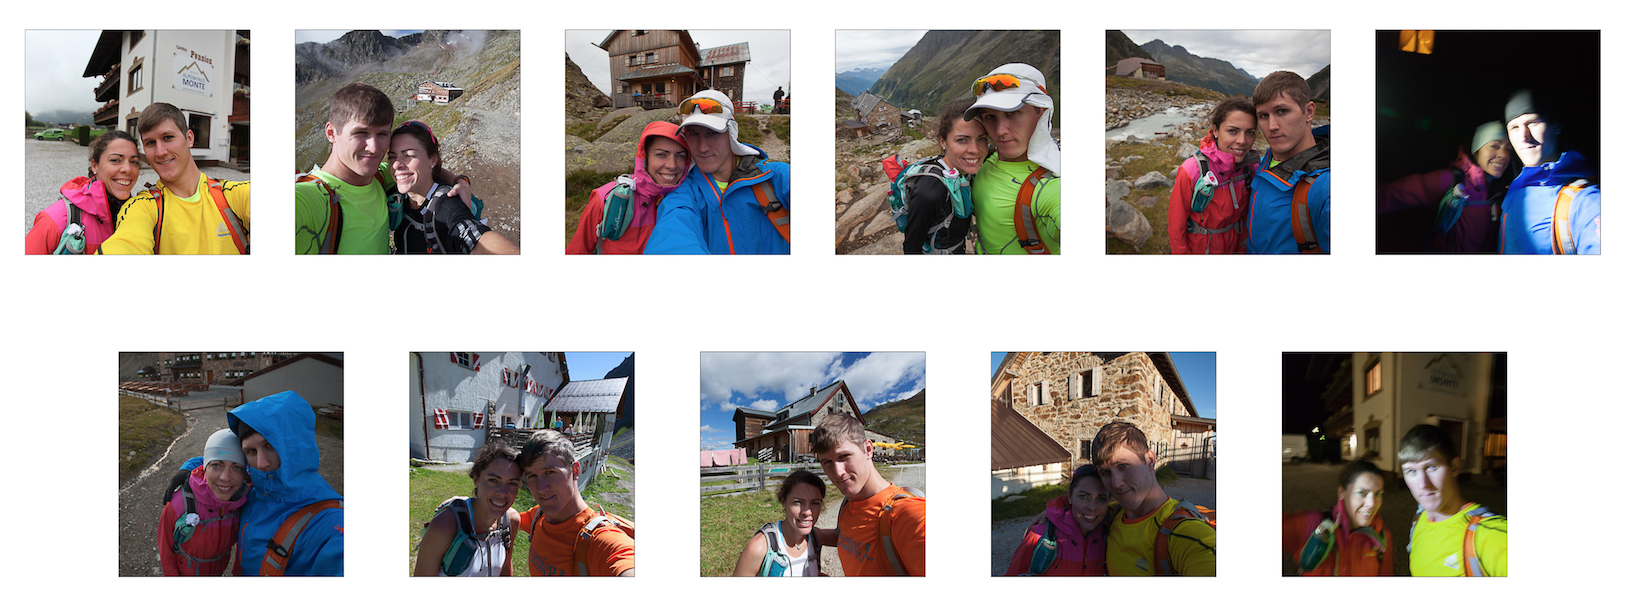 We took a photo at each mountain hut that we passed along the way. Stubaier Hohenweg | 02 - 03 Sep 2013 | Tyrol, Austria.